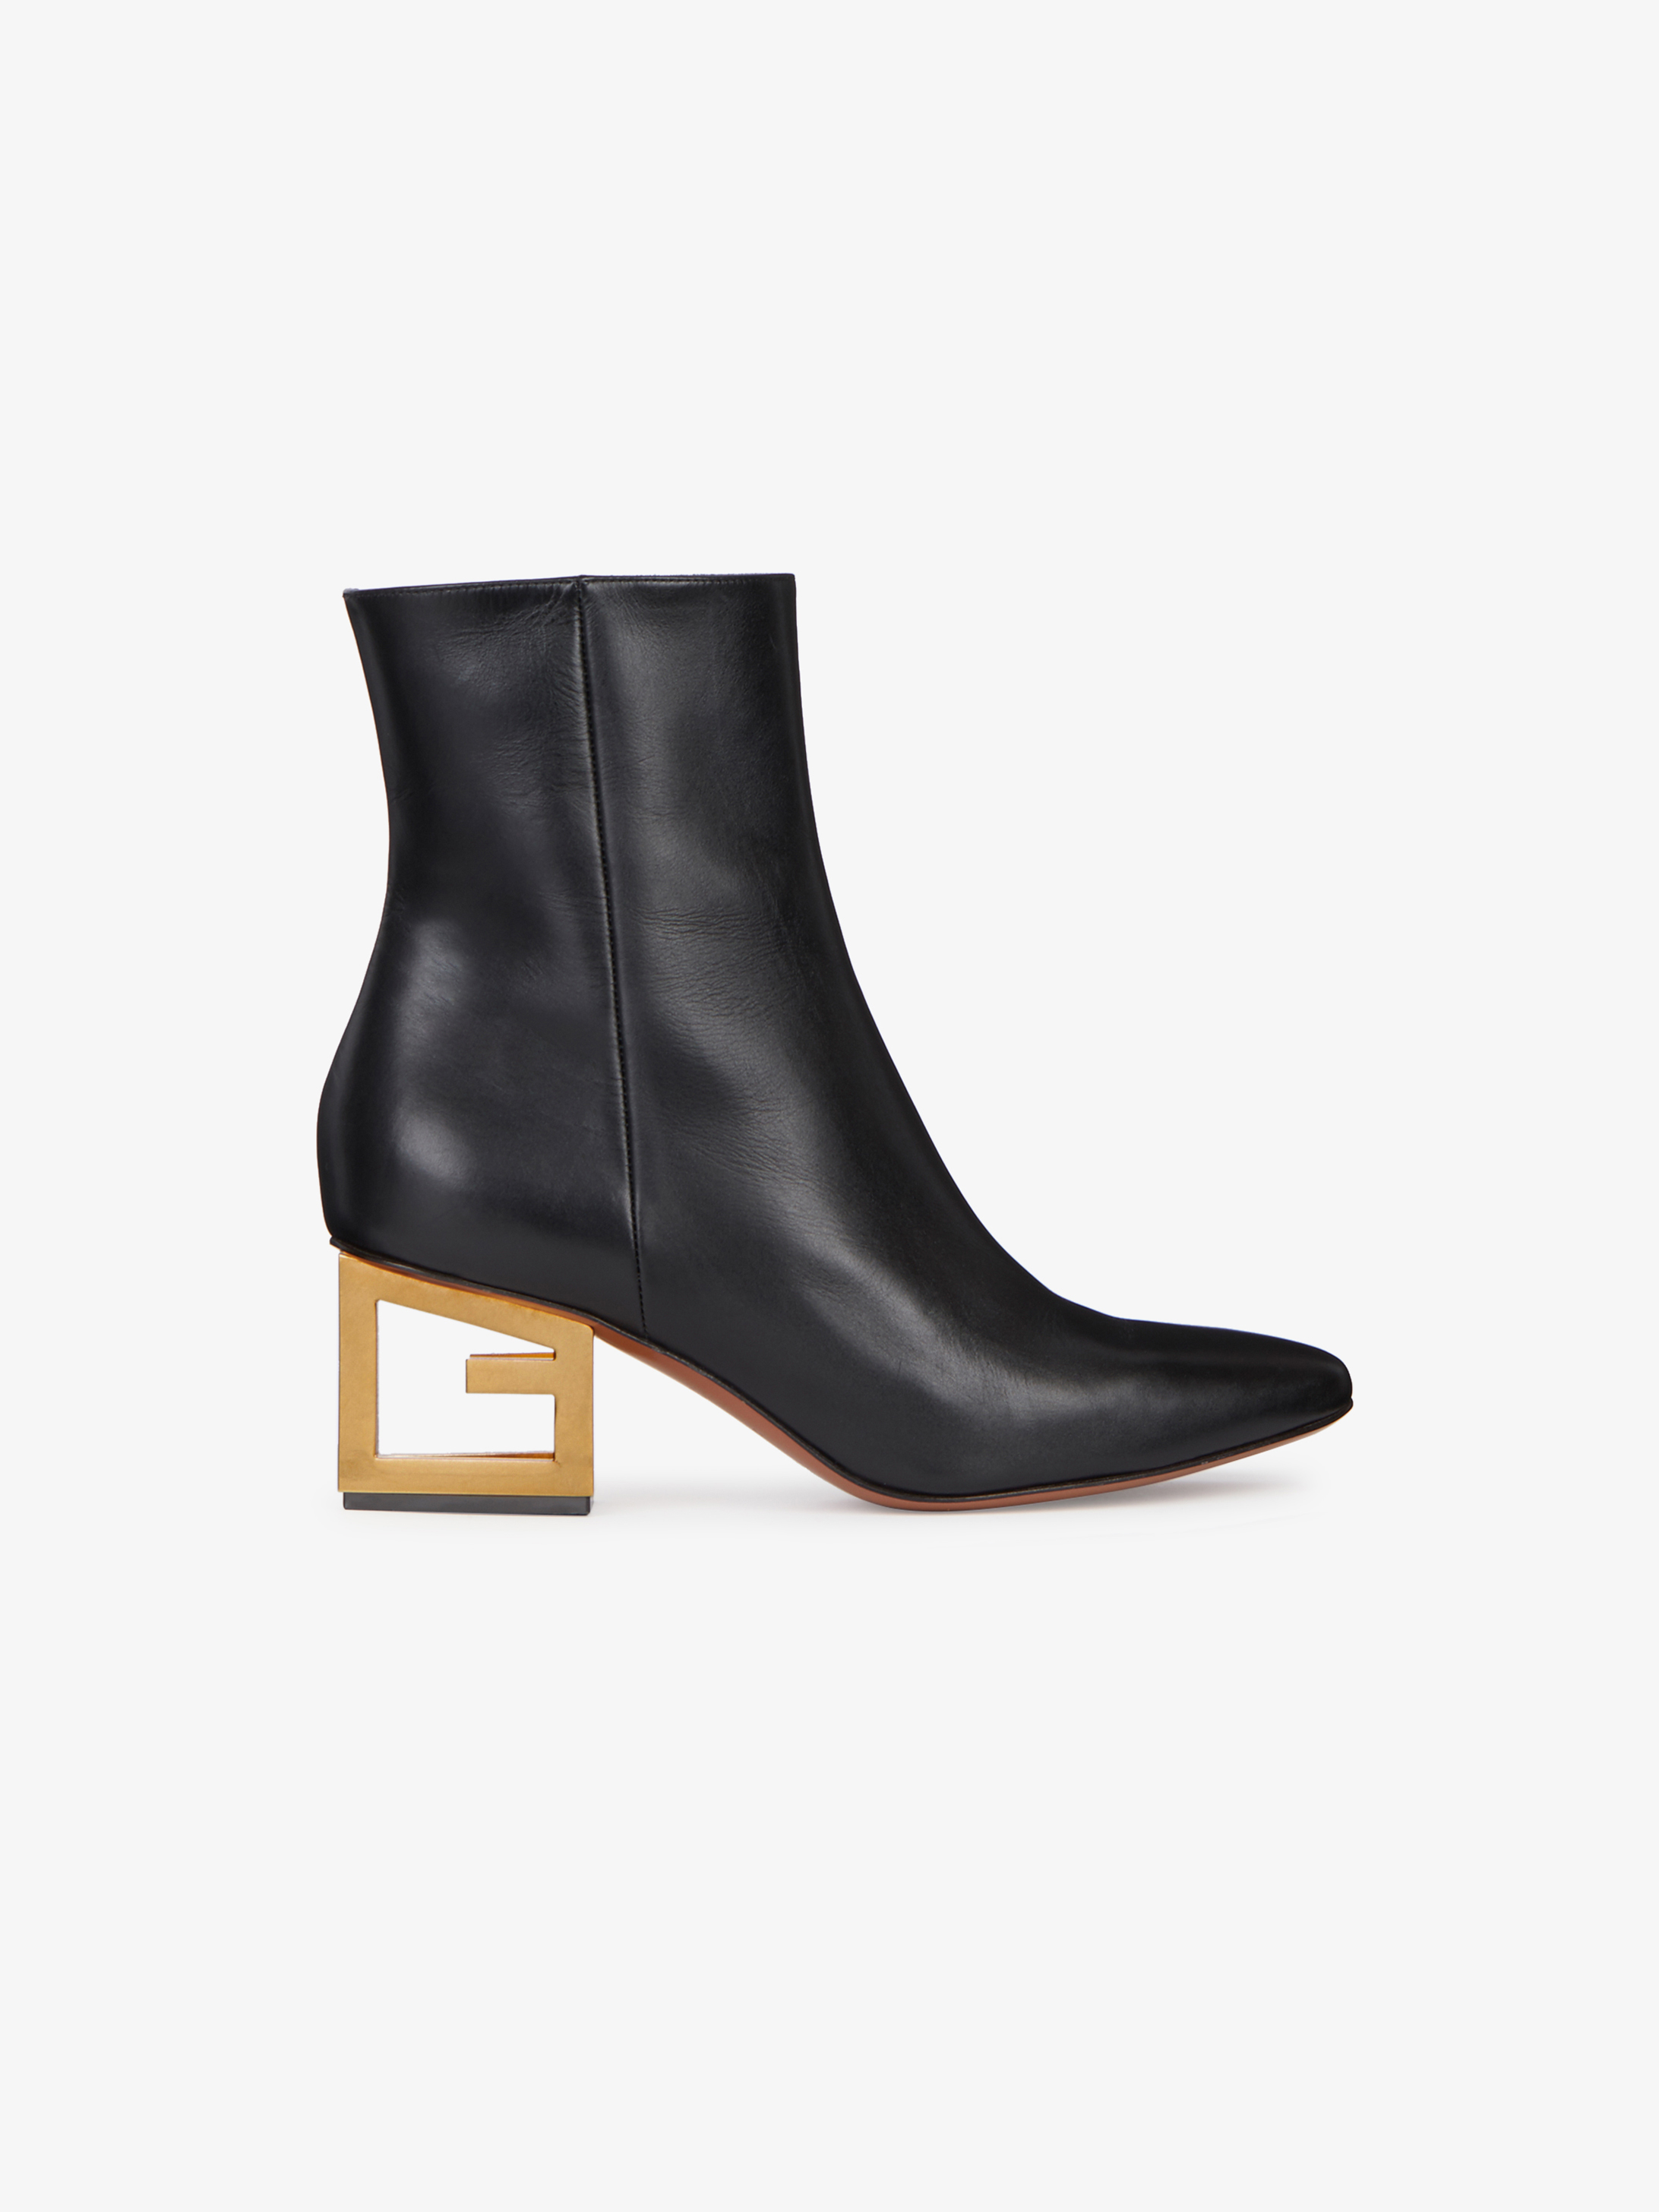 Ankle boots in leather with triangular G heel